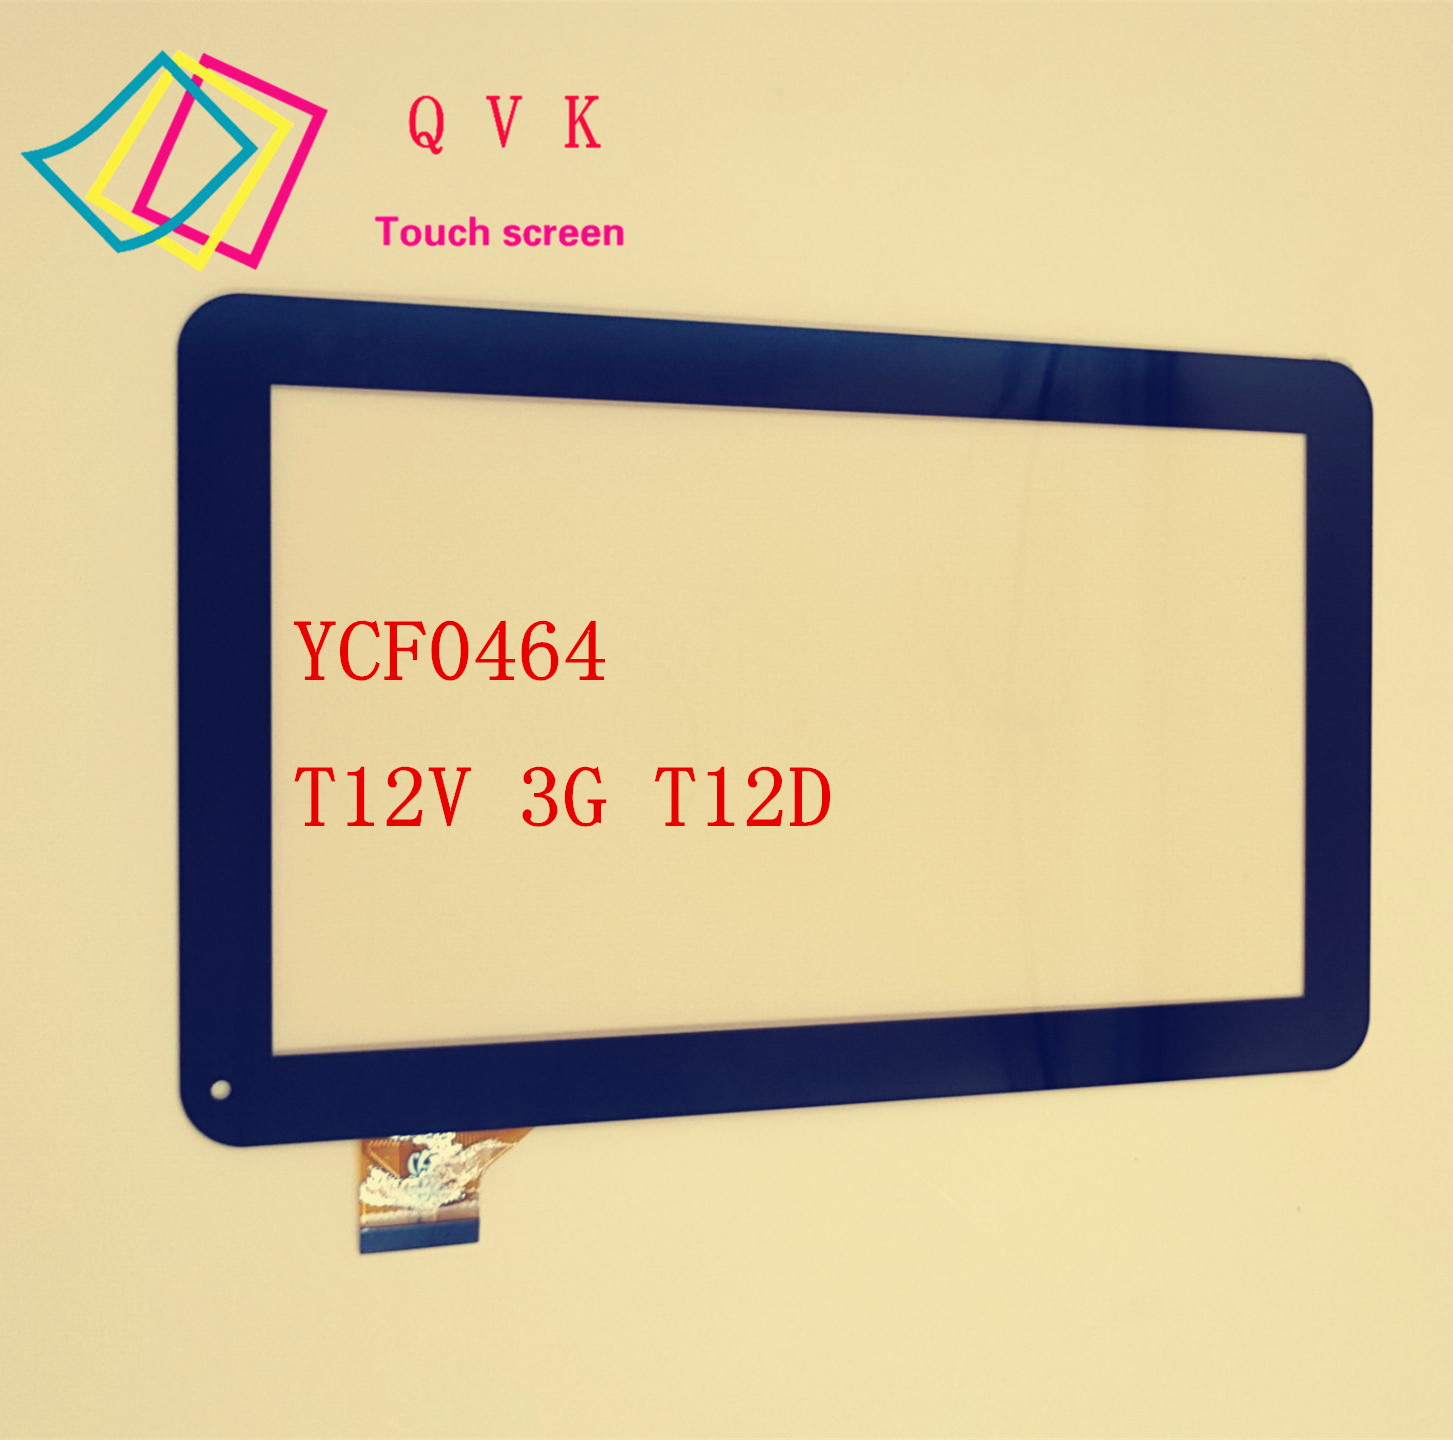 10.1inch YCF0464-A YCF0464 For Oysters T12 T12D T12V 3G Tablet pc external capacitive Touch screen capacitance panel 10 1 inch hk10dr2438 hk10dr2438 v01 external capacitive touch screen capacitance panel handwritten